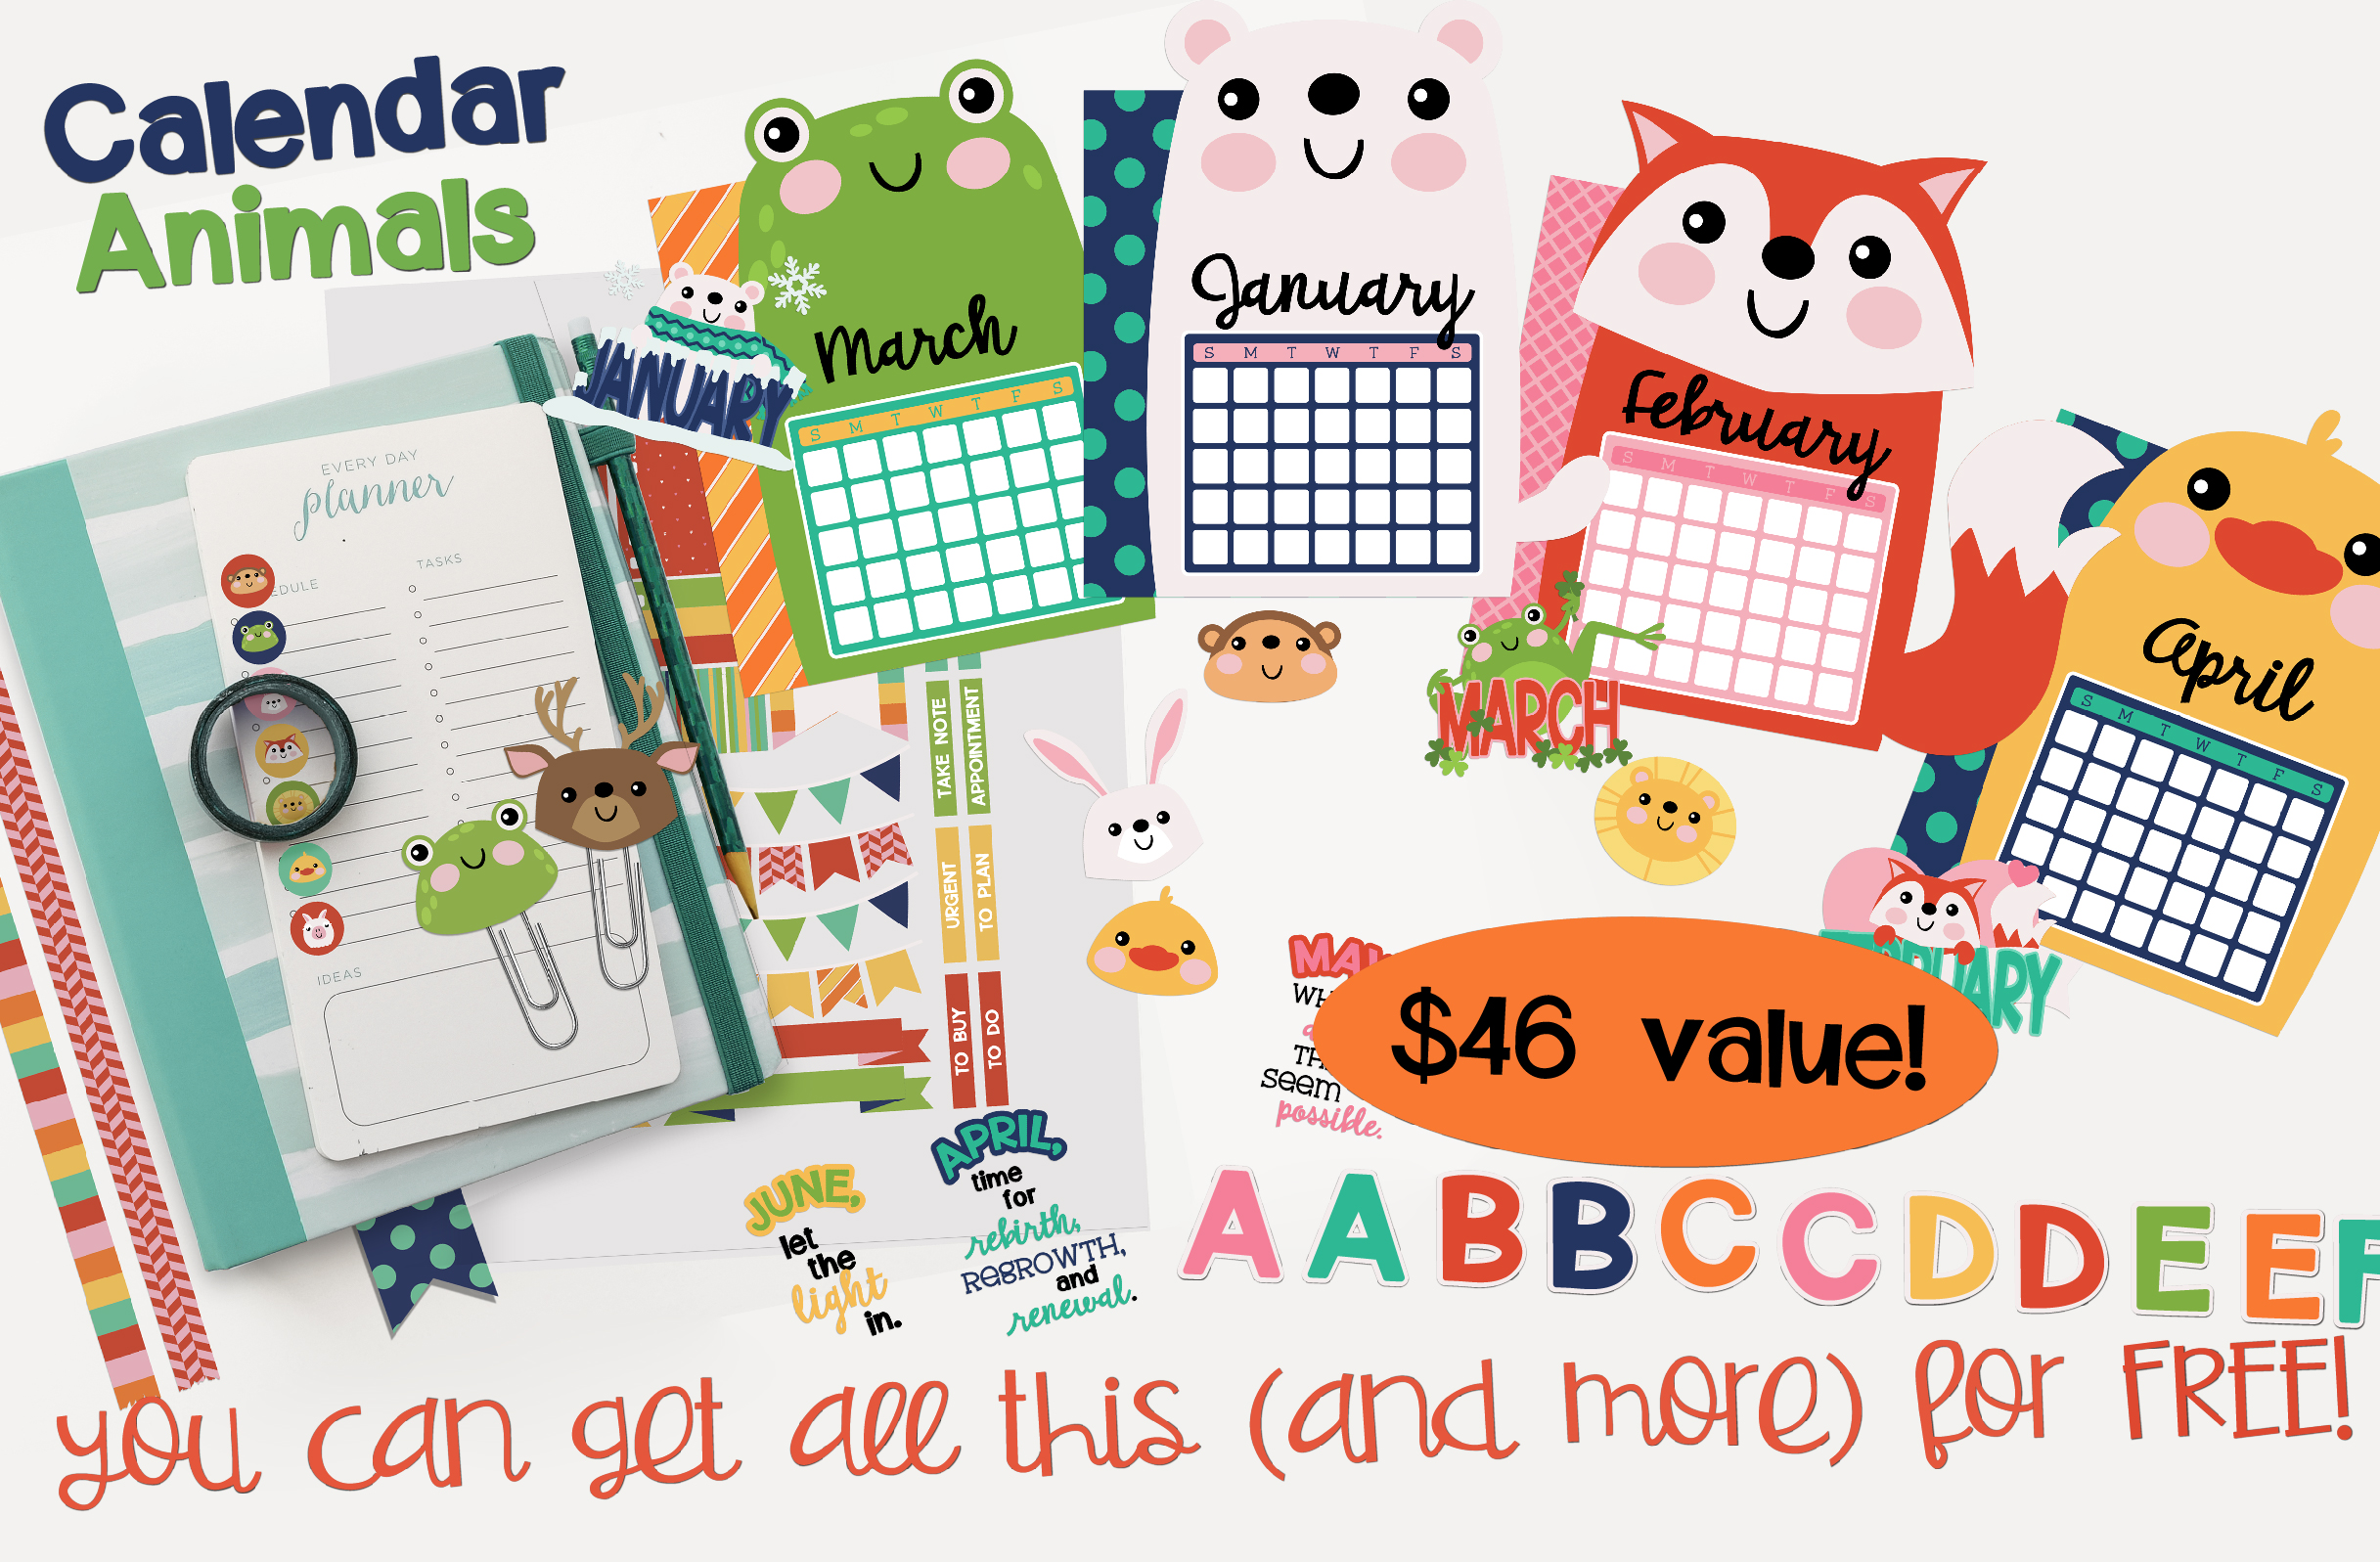 Earn the Calendar Animals - Promotional Bundle - Free